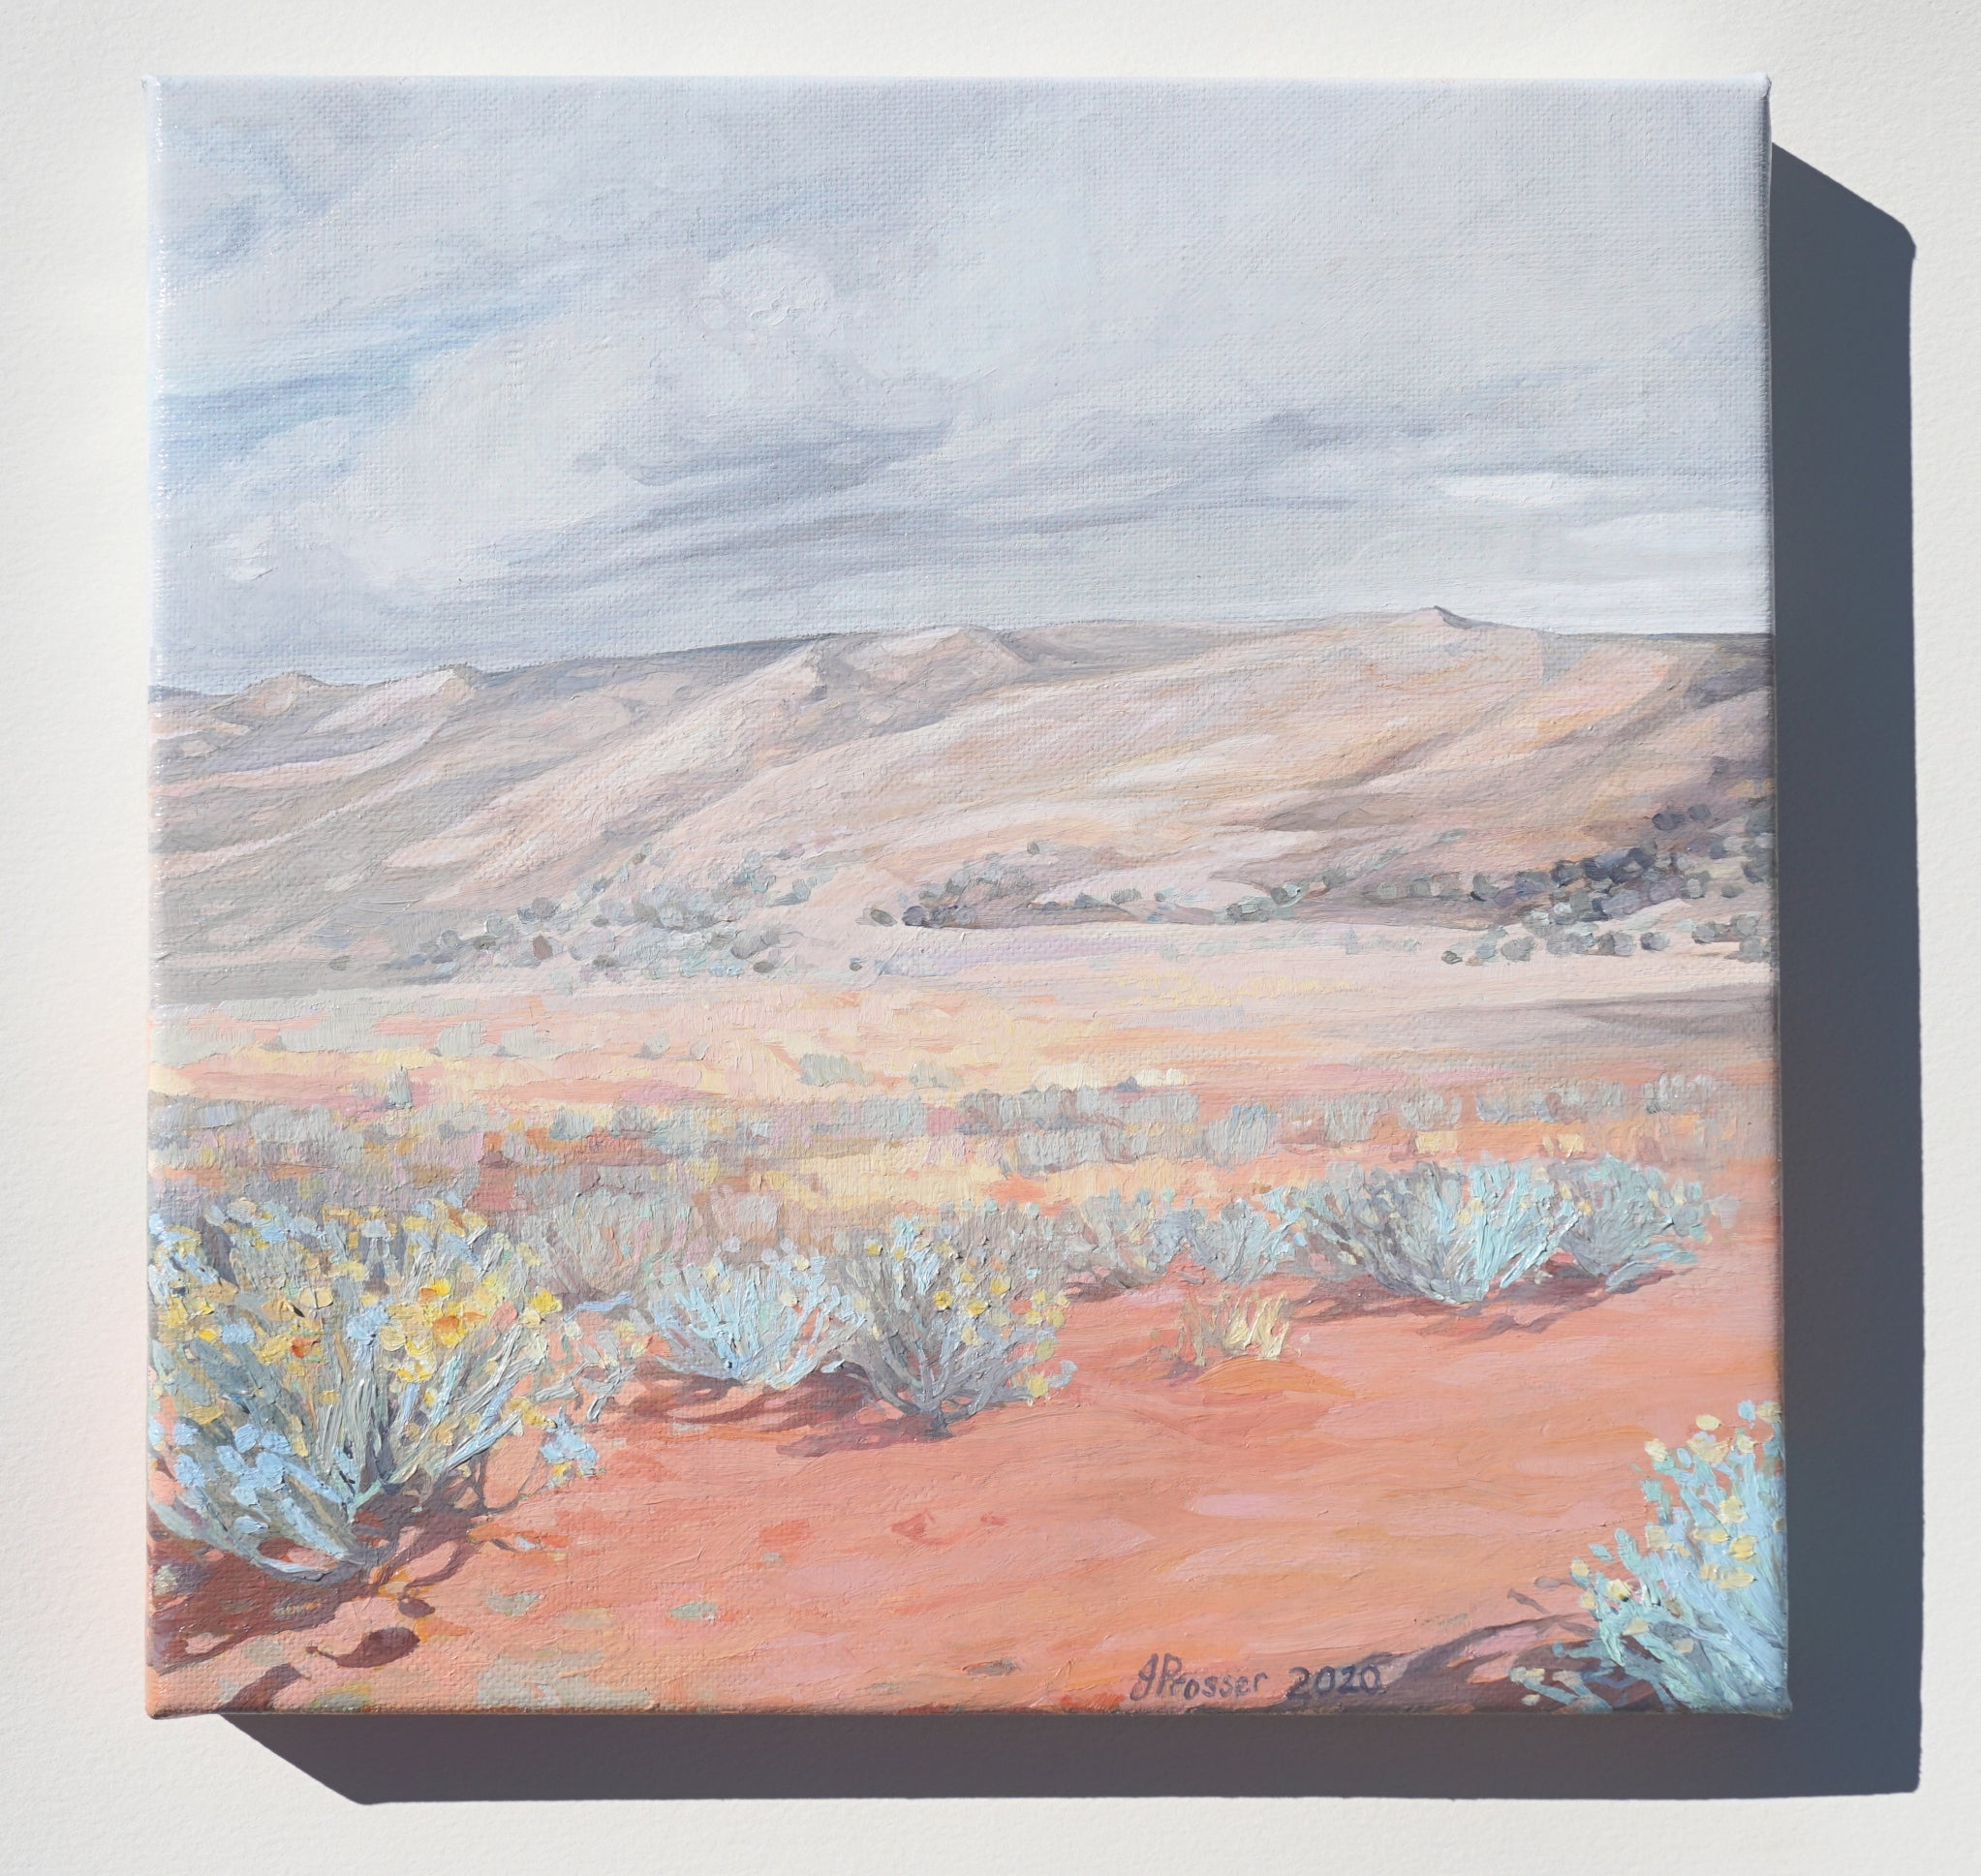 Desert and Blue Bush Landscape painting by Australian artist Jaime Prosser